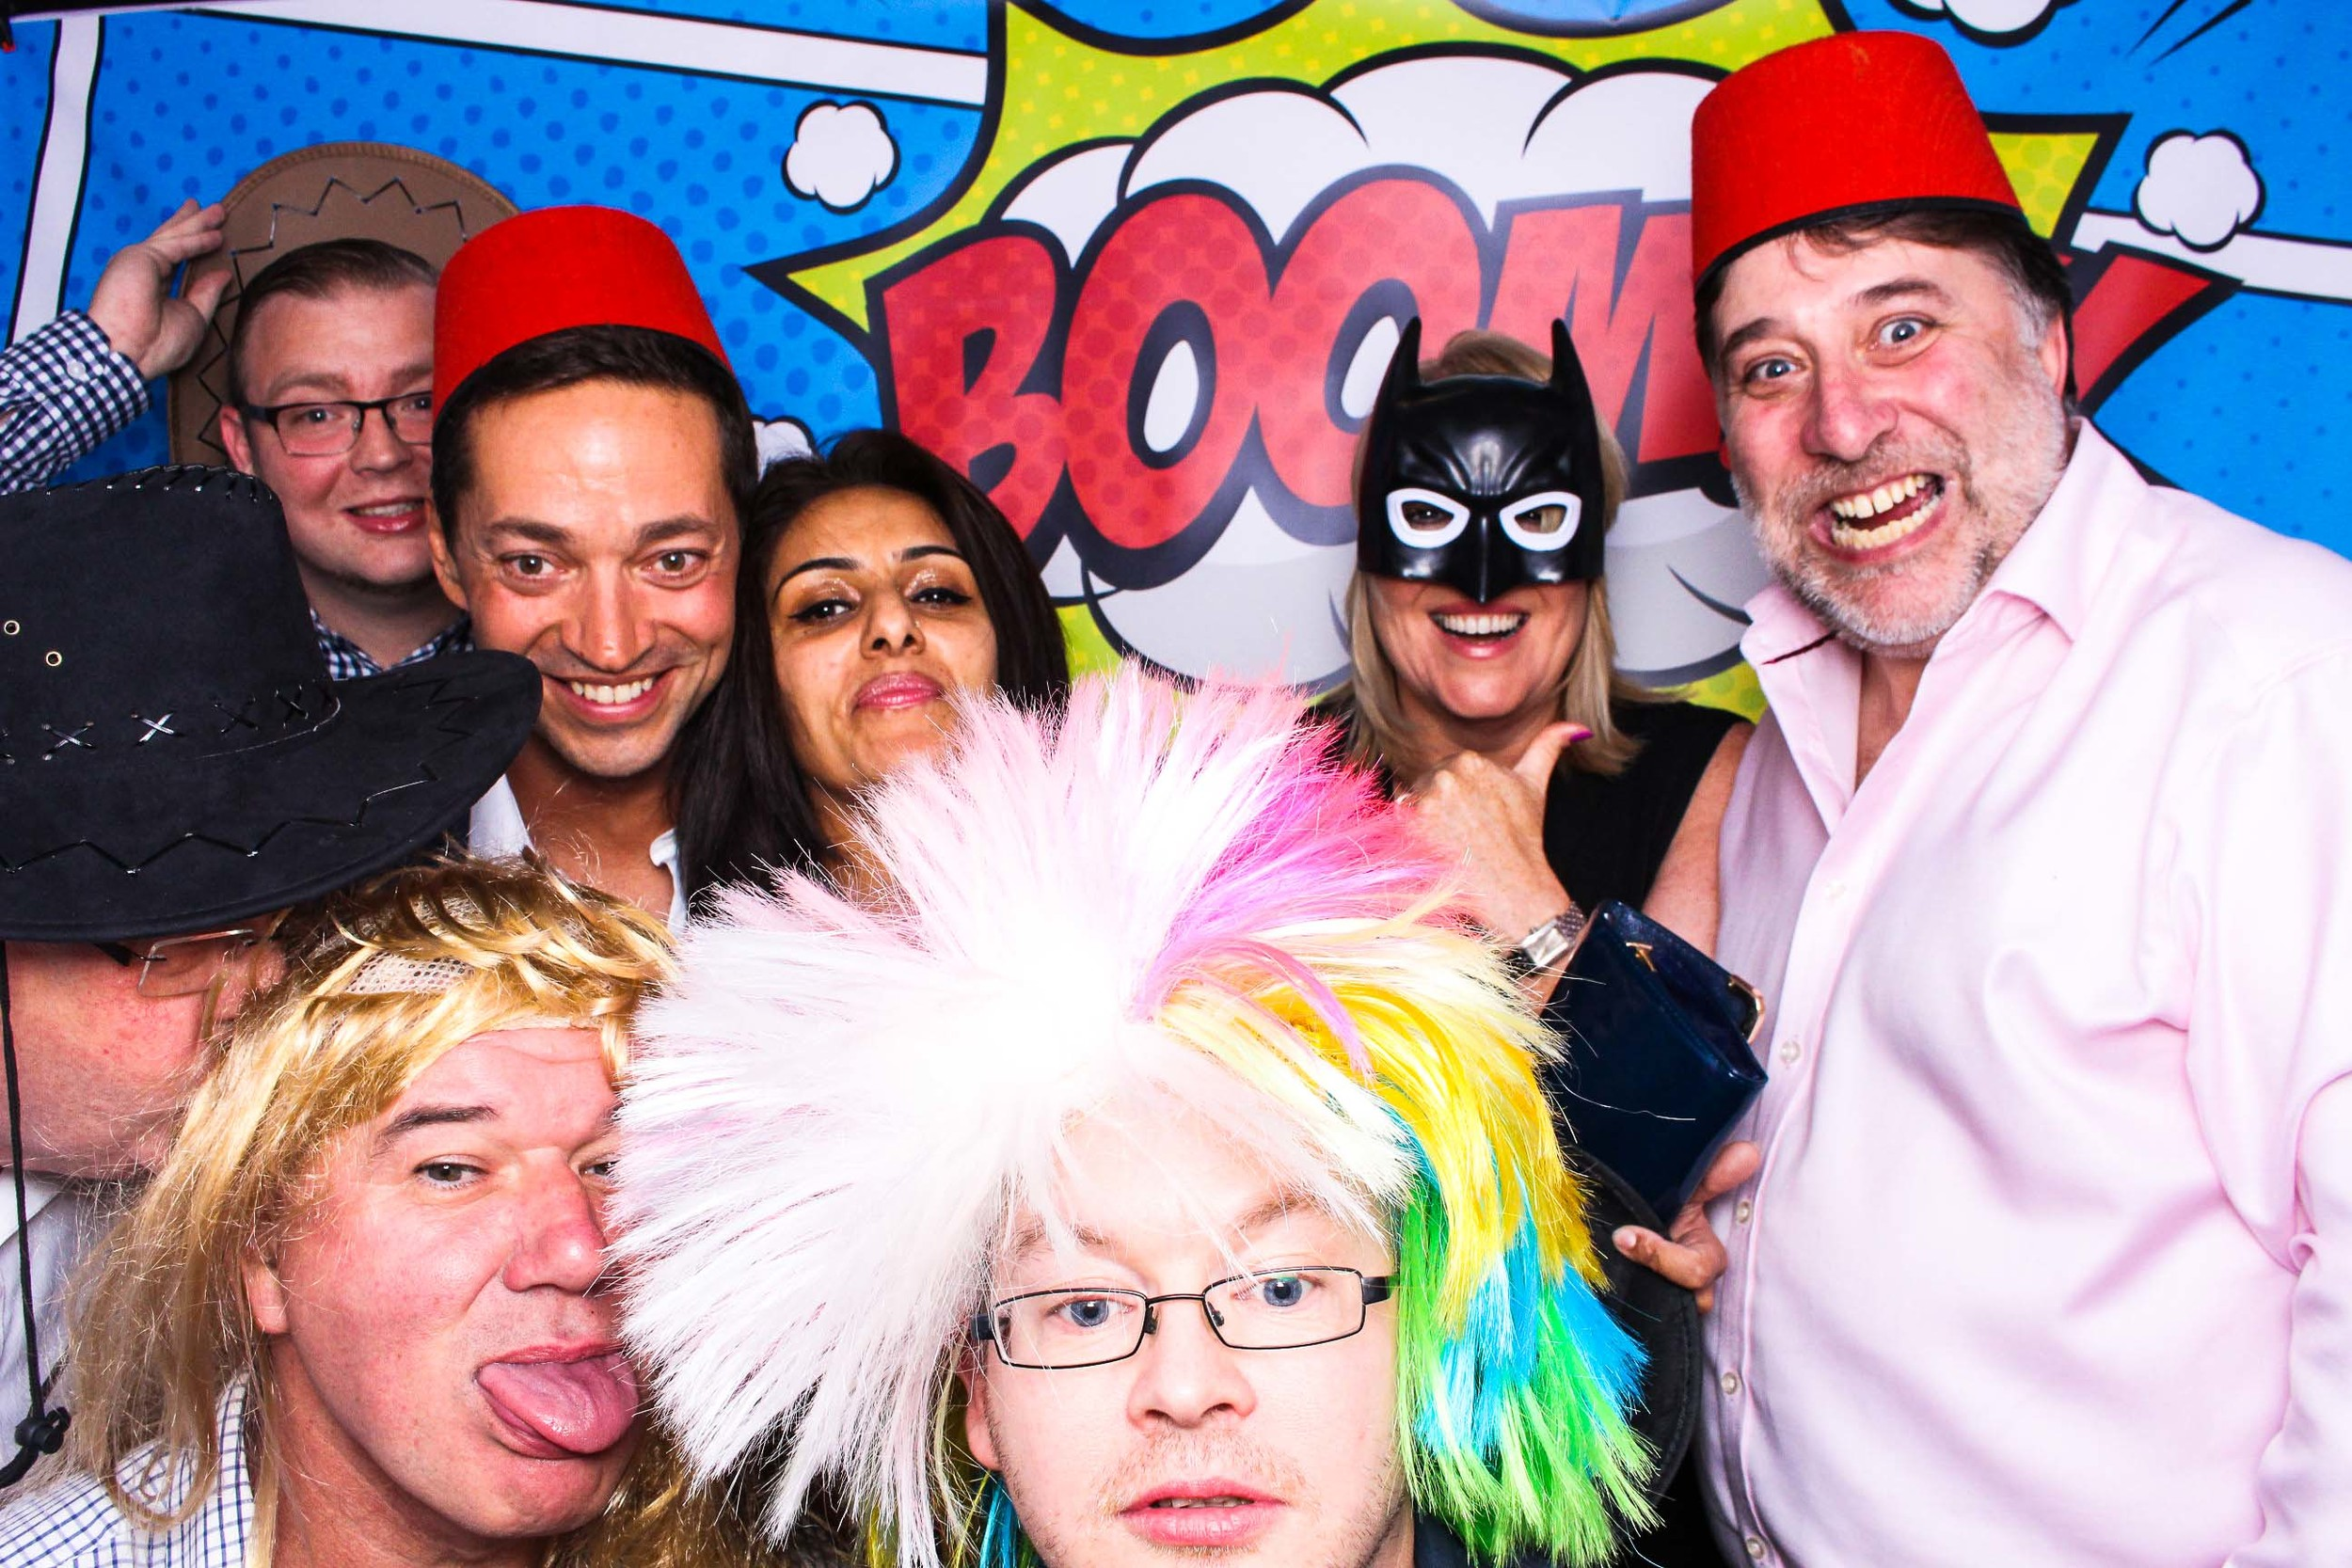 Fotoauto Photo Booth Hire - Shop Direct-224.jpg